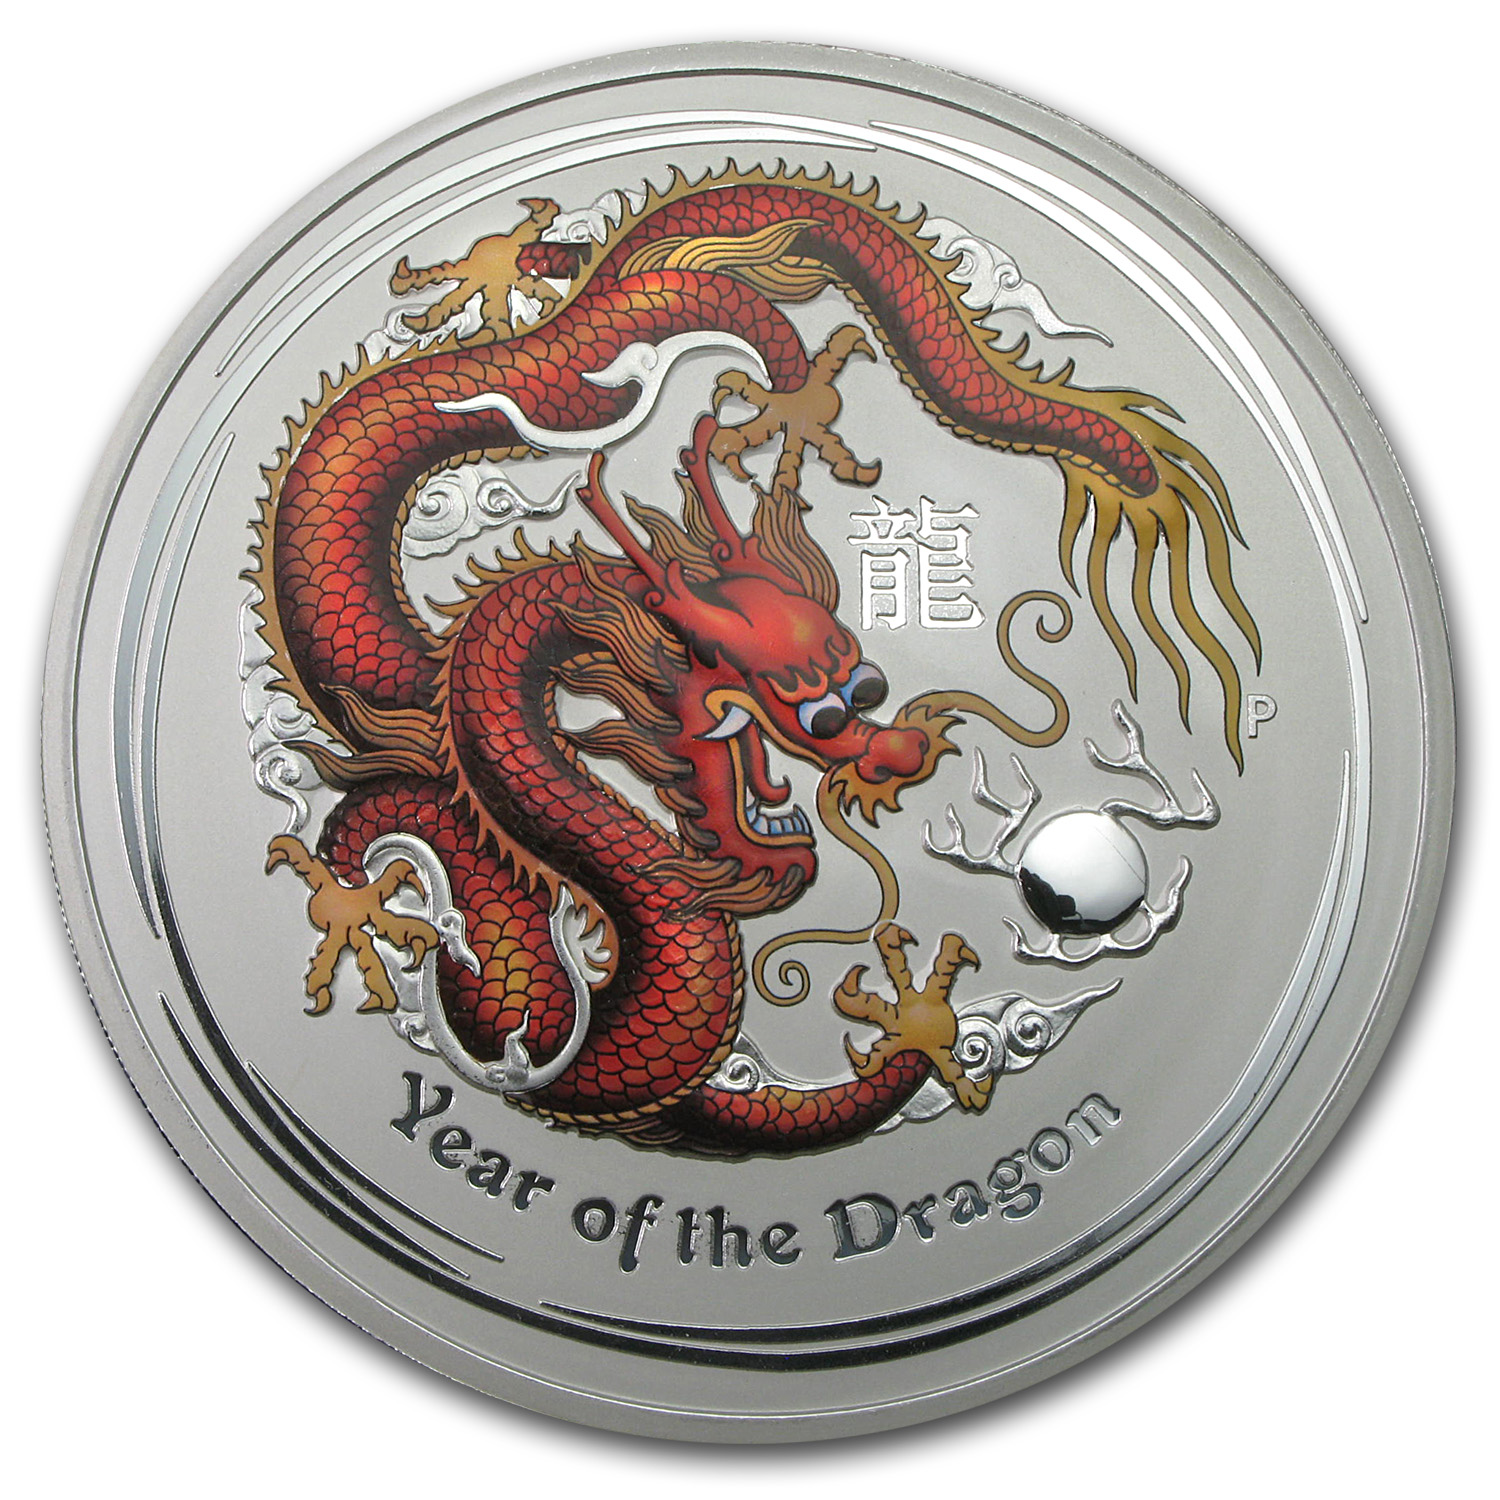 2012 1 Kilo Silver Year of the Dragon Colorized Coin (Abrasions)